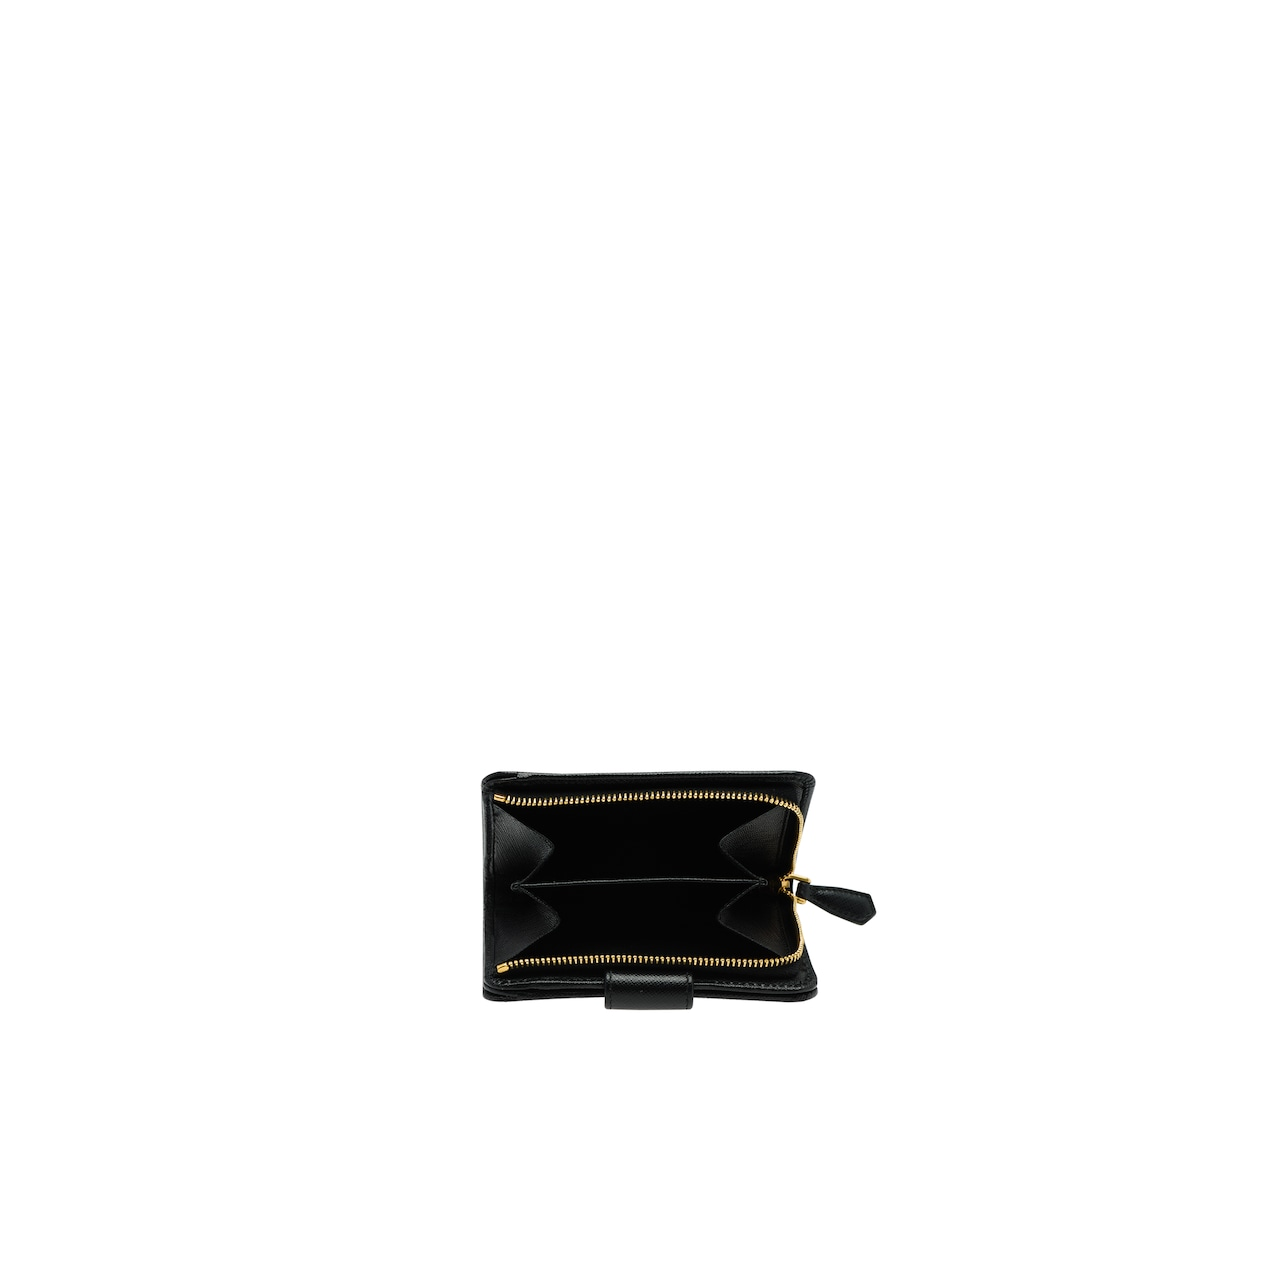 Small Saffiano leather Wallet 2